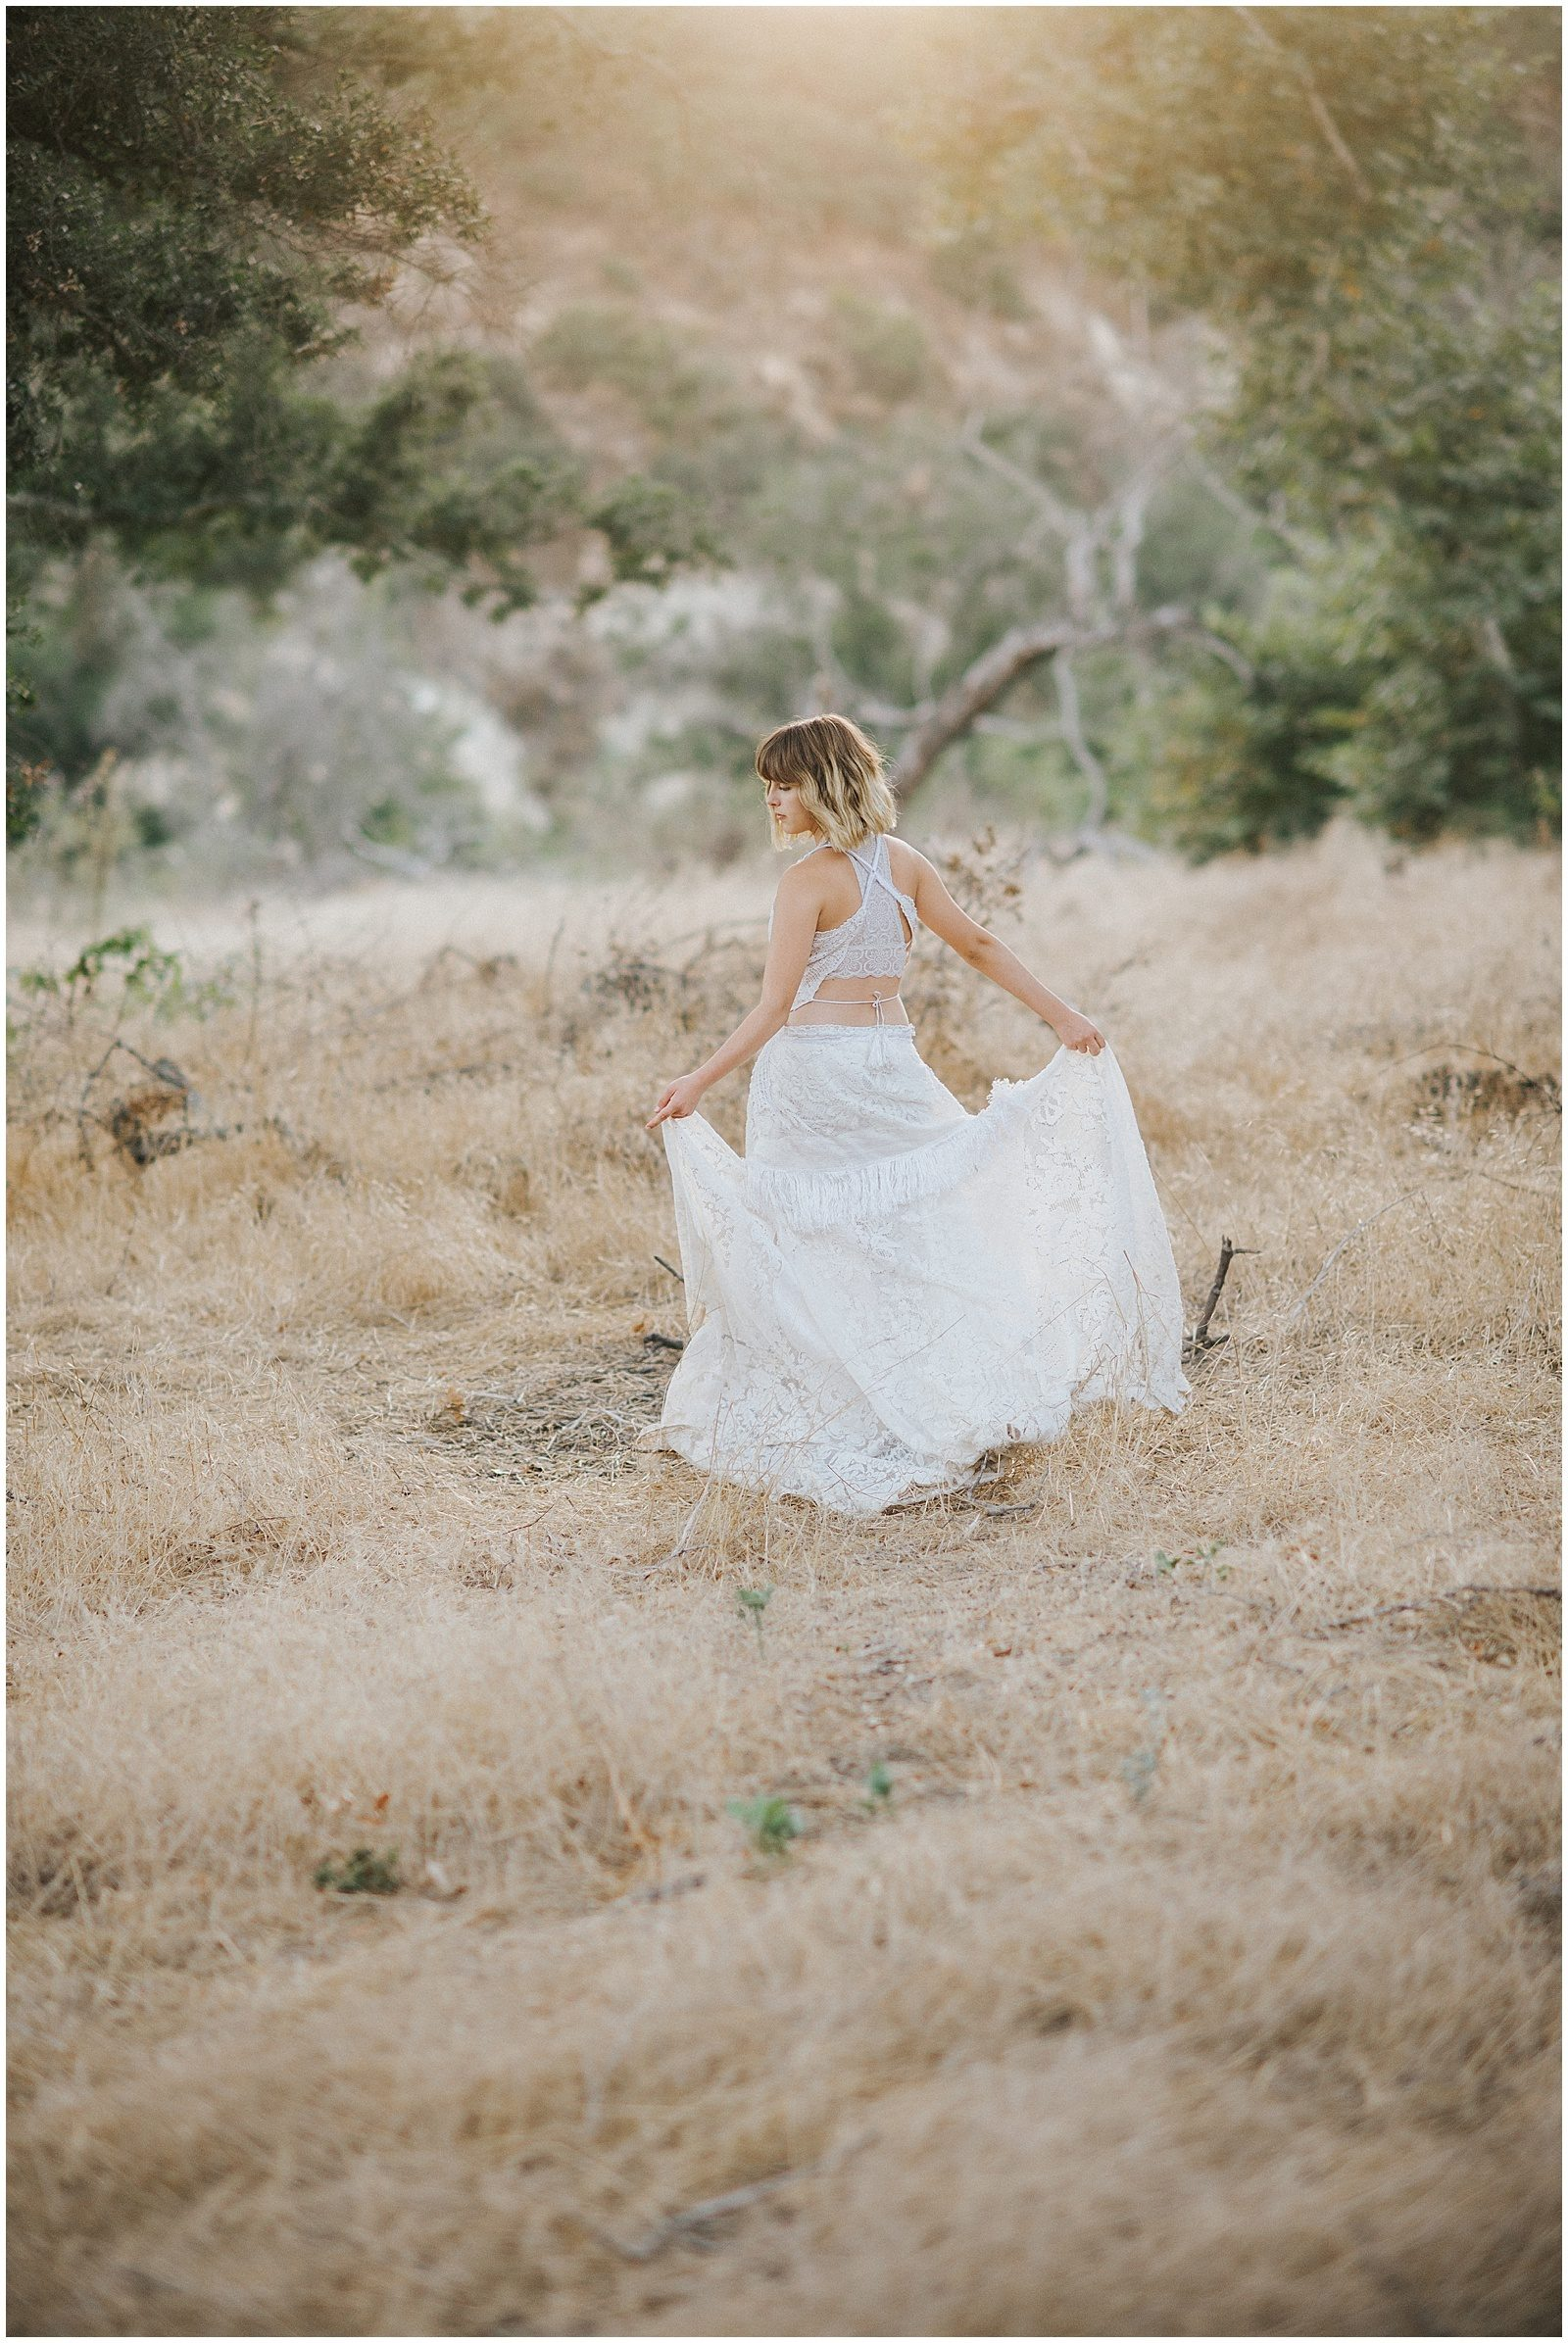 Orange County Family Photographer Travelling Reclamation Dress 0269